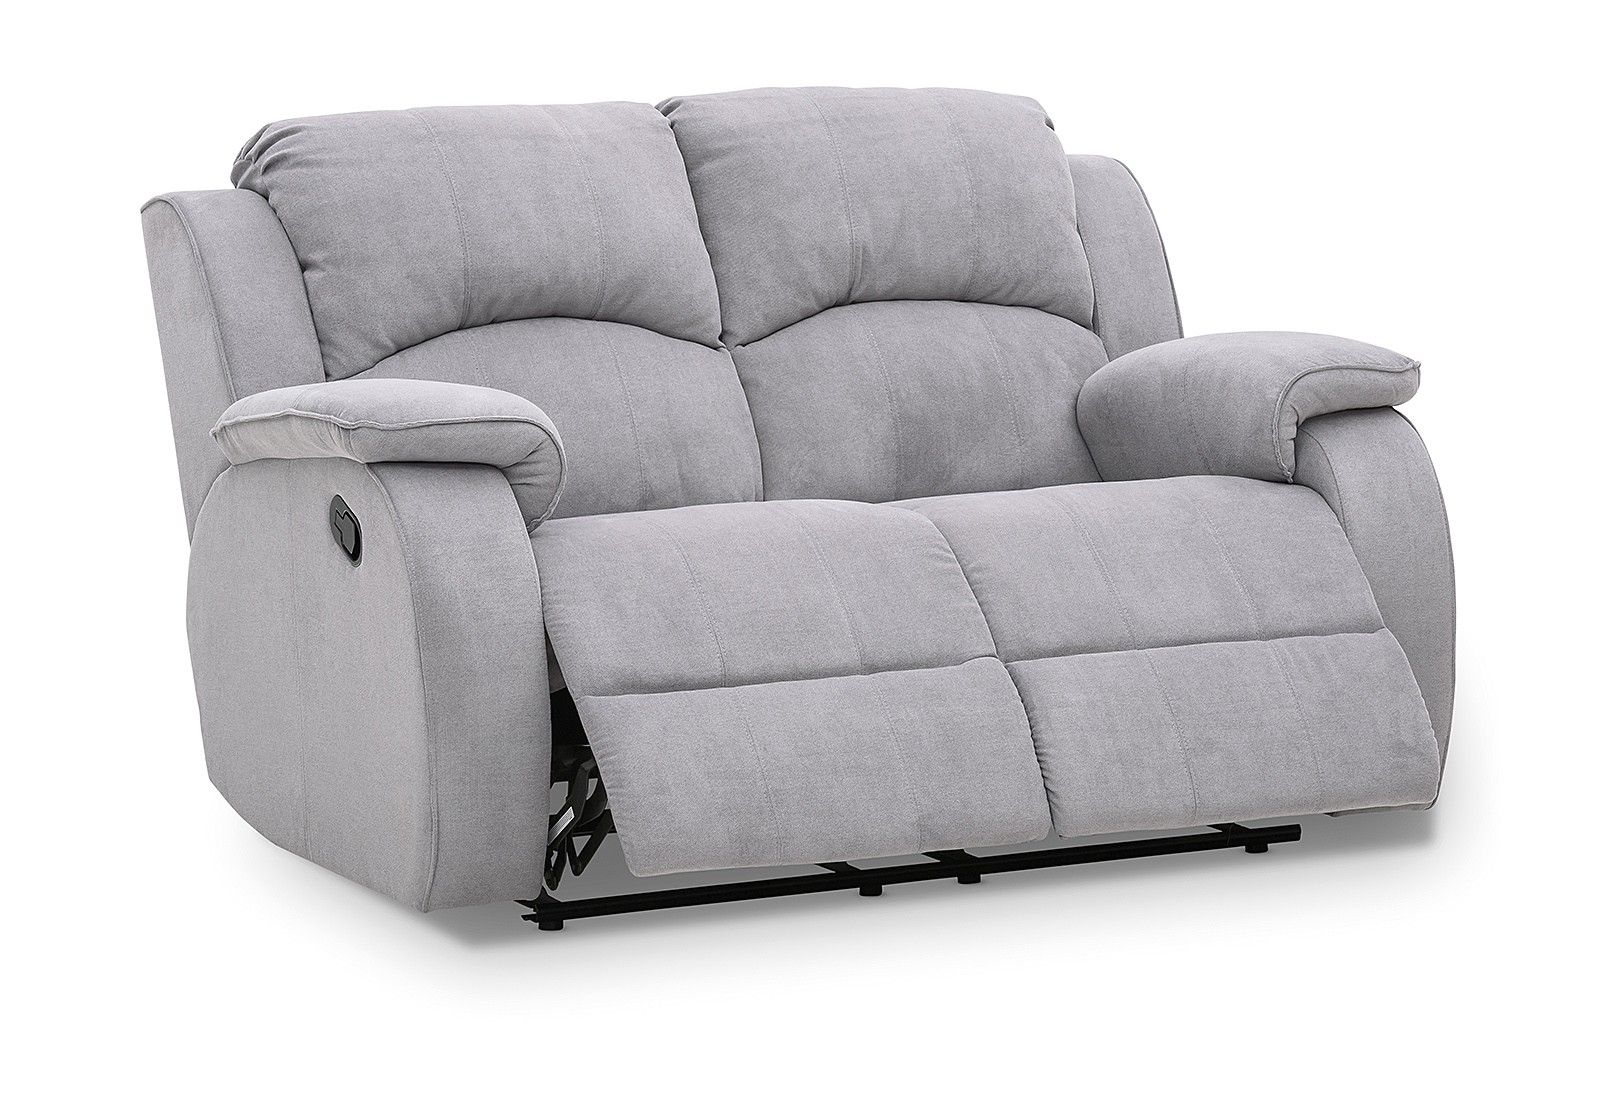 Saloon Fabric 2 Seater With 2 Inbuilt Recliners Amart Furniture 649 Furniture Seater Electric Recliners